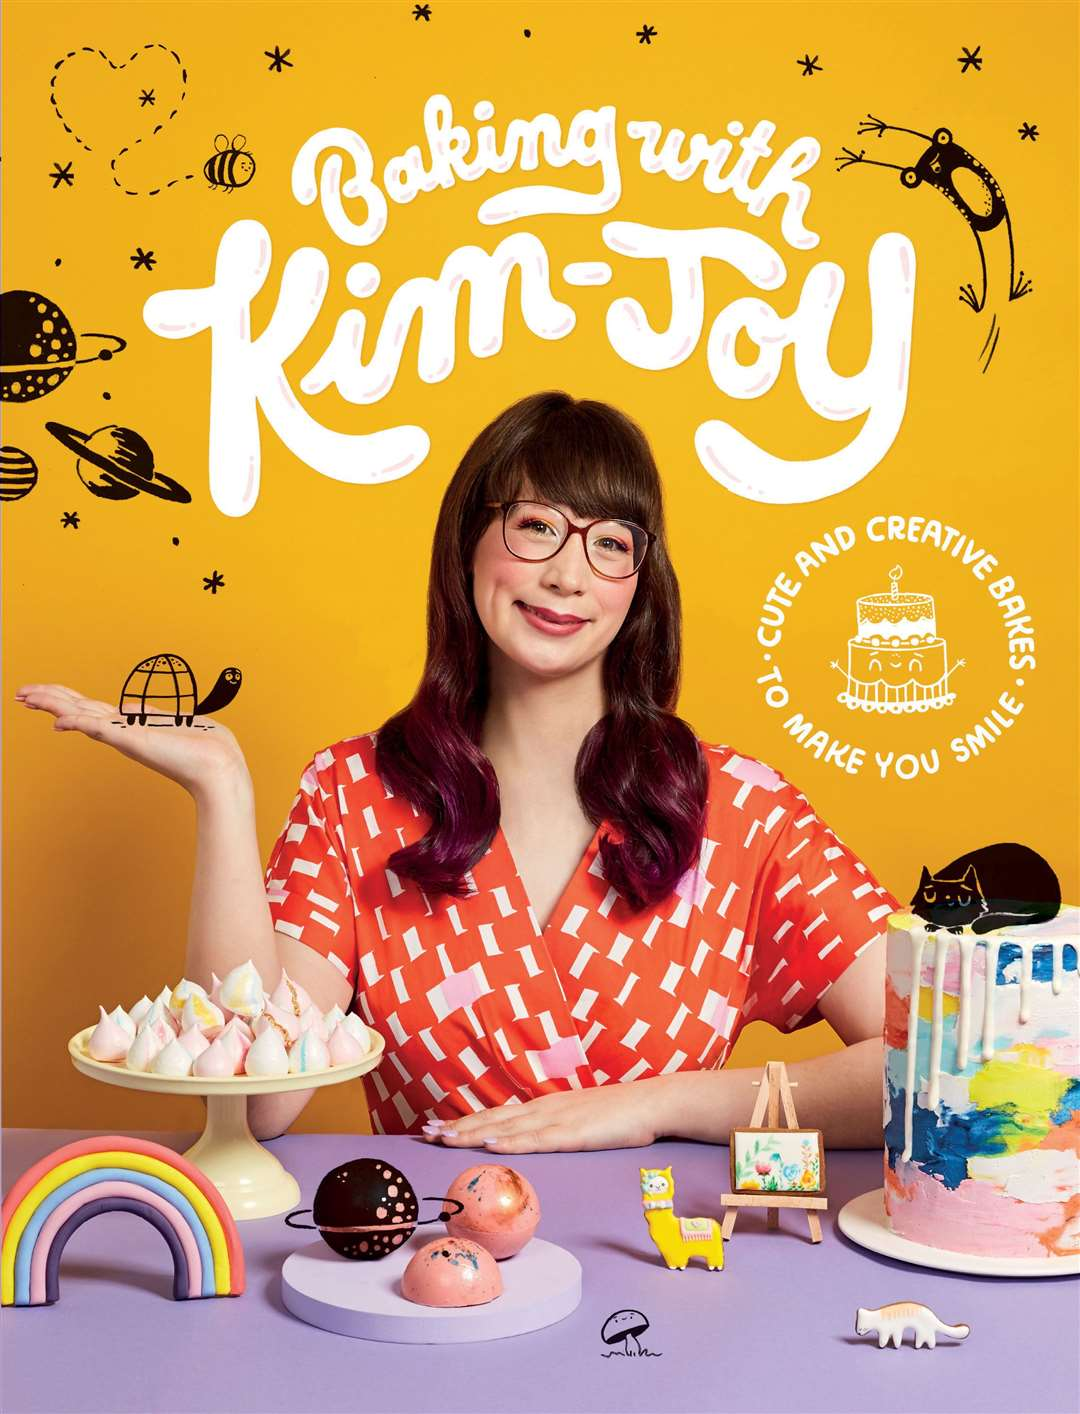 Baking With Kim-Joy: Cute And Creative Bakes To Make You Smile by Kim-Joy, is published by Quadrille, priced £18.99. Available now.